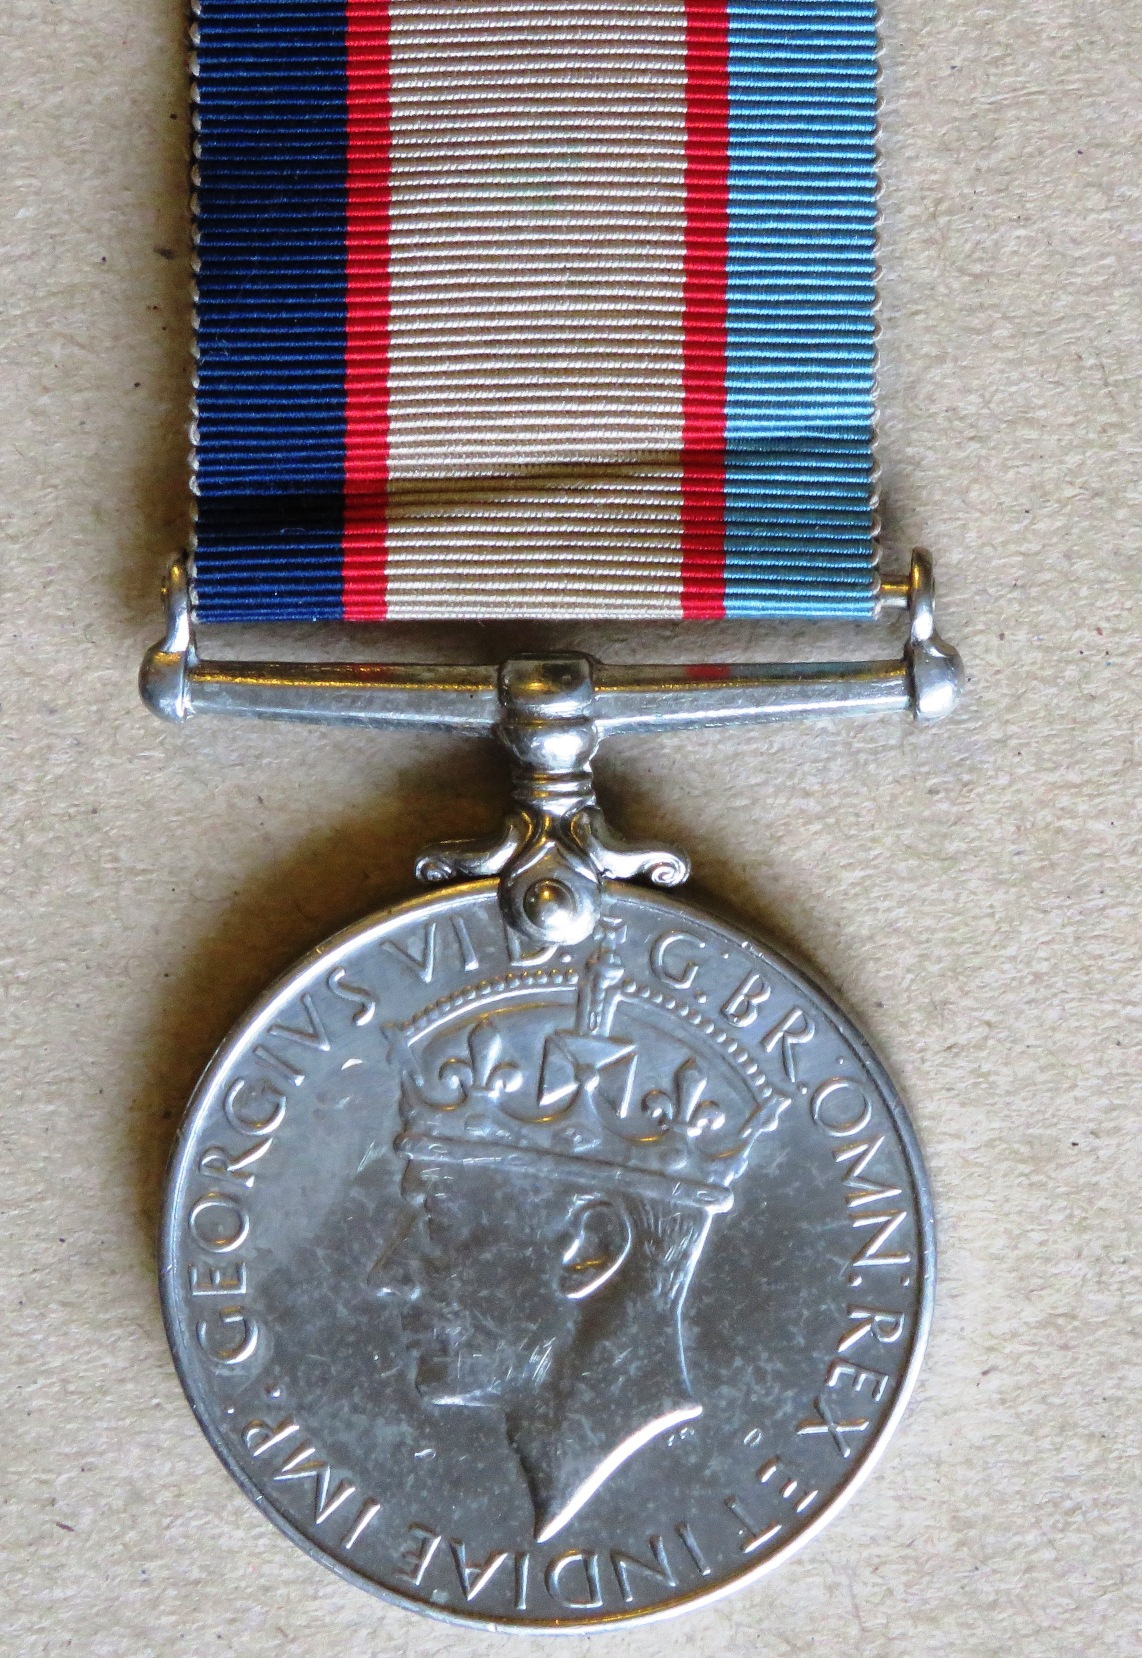 Australia Service Medal, 1939-1945, attributed to VX7453 Lance Corporal A.T. MacDonald